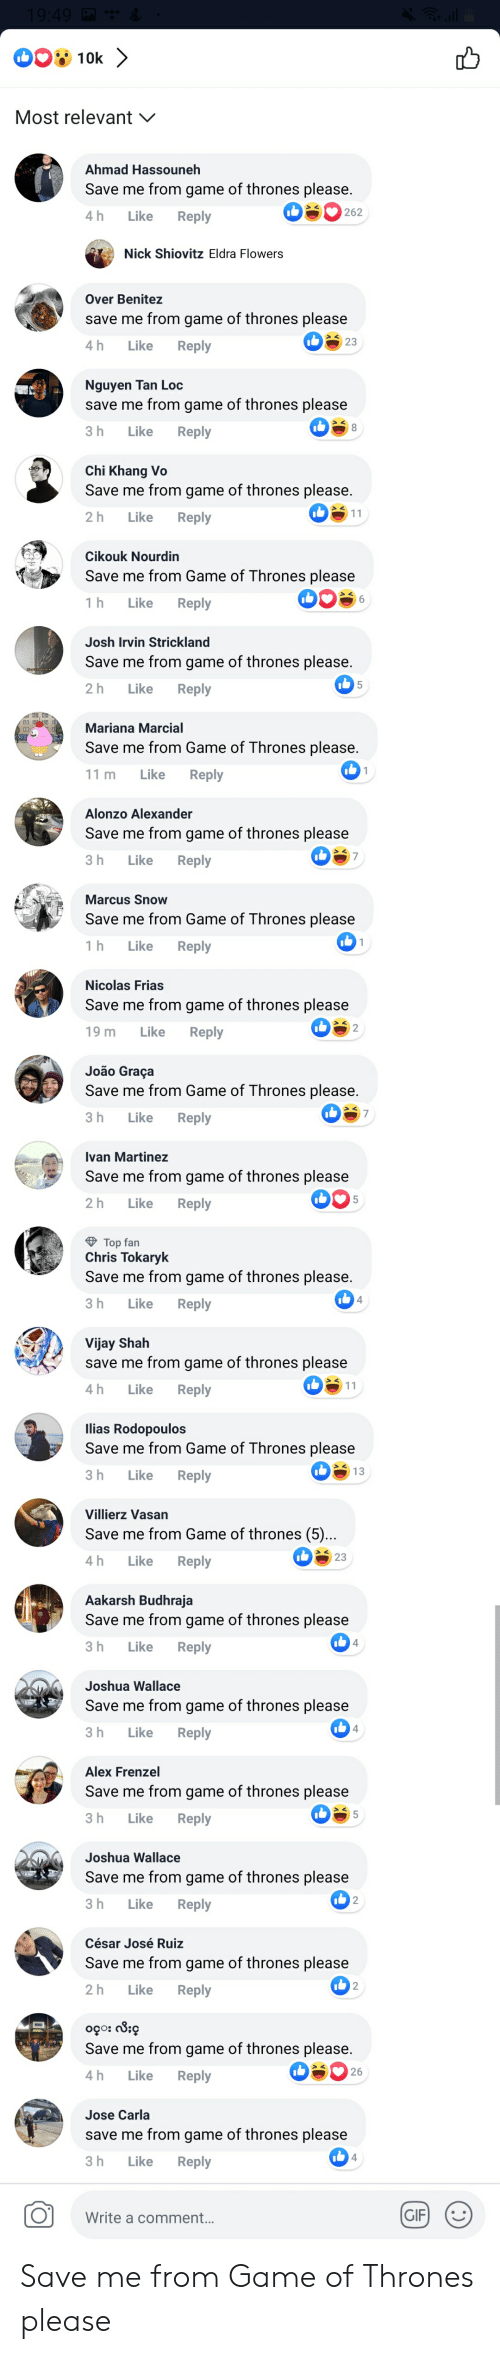 Benitez: Most relevant  Ahmad Hassouneh  Save me from game of thrones please  4h Like Reply  Nick Shiovitz Eldra Flowers  Over Benitez  save me from game of thrones please  h Like Reply  23  Nguyen Tan Loc  save me from game of thrones please  3 h Like Reply  Chi Khang Vo  Save me from game of thrones please  2 h Like Reply  Cikouk Nourdin  Save me from Game of Thrones please  1h Like Reply  Josh Irvin Strickland  Save me from game of thrones please  2h Like Reply  Mariana Marcial  Save me from Game of Thrones please  11 m Like Reply  Alonzo Alexander  Save me from game of thrones please  3 h Like Reply  Marcus Snow  Save me from Game of Thrones please  h Like Reply  Nicolas Frias  Save me from game of thrones please  9 m Like Reply  João Graça  Save me from Game of Thrones please  3 h Like Reply  Ivan Martinez  Save me from game of thrones please  2 h Like Reply  Top fan  Chris Tokaryk  Save me from game of thrones please  3 h Like Reply  Vijay Shah  save me from game of thrones please  4h Like Reply  lias Rodopoulos  Save me from Game of Thrones please  h Like Reply  13  Villierz Vasan  Save me from Game of thrones (5)..  h Like Reply  23  Aakarsh Budhraja  Save me from game of thrones please  3 h Like Reply  Joshua Wallace  Save me from game of thrones please  3 h Like Reply  Alex Frenzel  Save me from game of thrones please  3 h Like Reply  Joshua Wallace  Save me from game of thrones please  h Like Reply  César José Ruiz  Save me from game of thrones please  2h Like Reply  Save me from game of thrones please  h Like Reply  26  Jose Carla  save me from game of thrones please  3 h Like Reply  OWrite a comment.  GIF Save me from Game of Thrones please